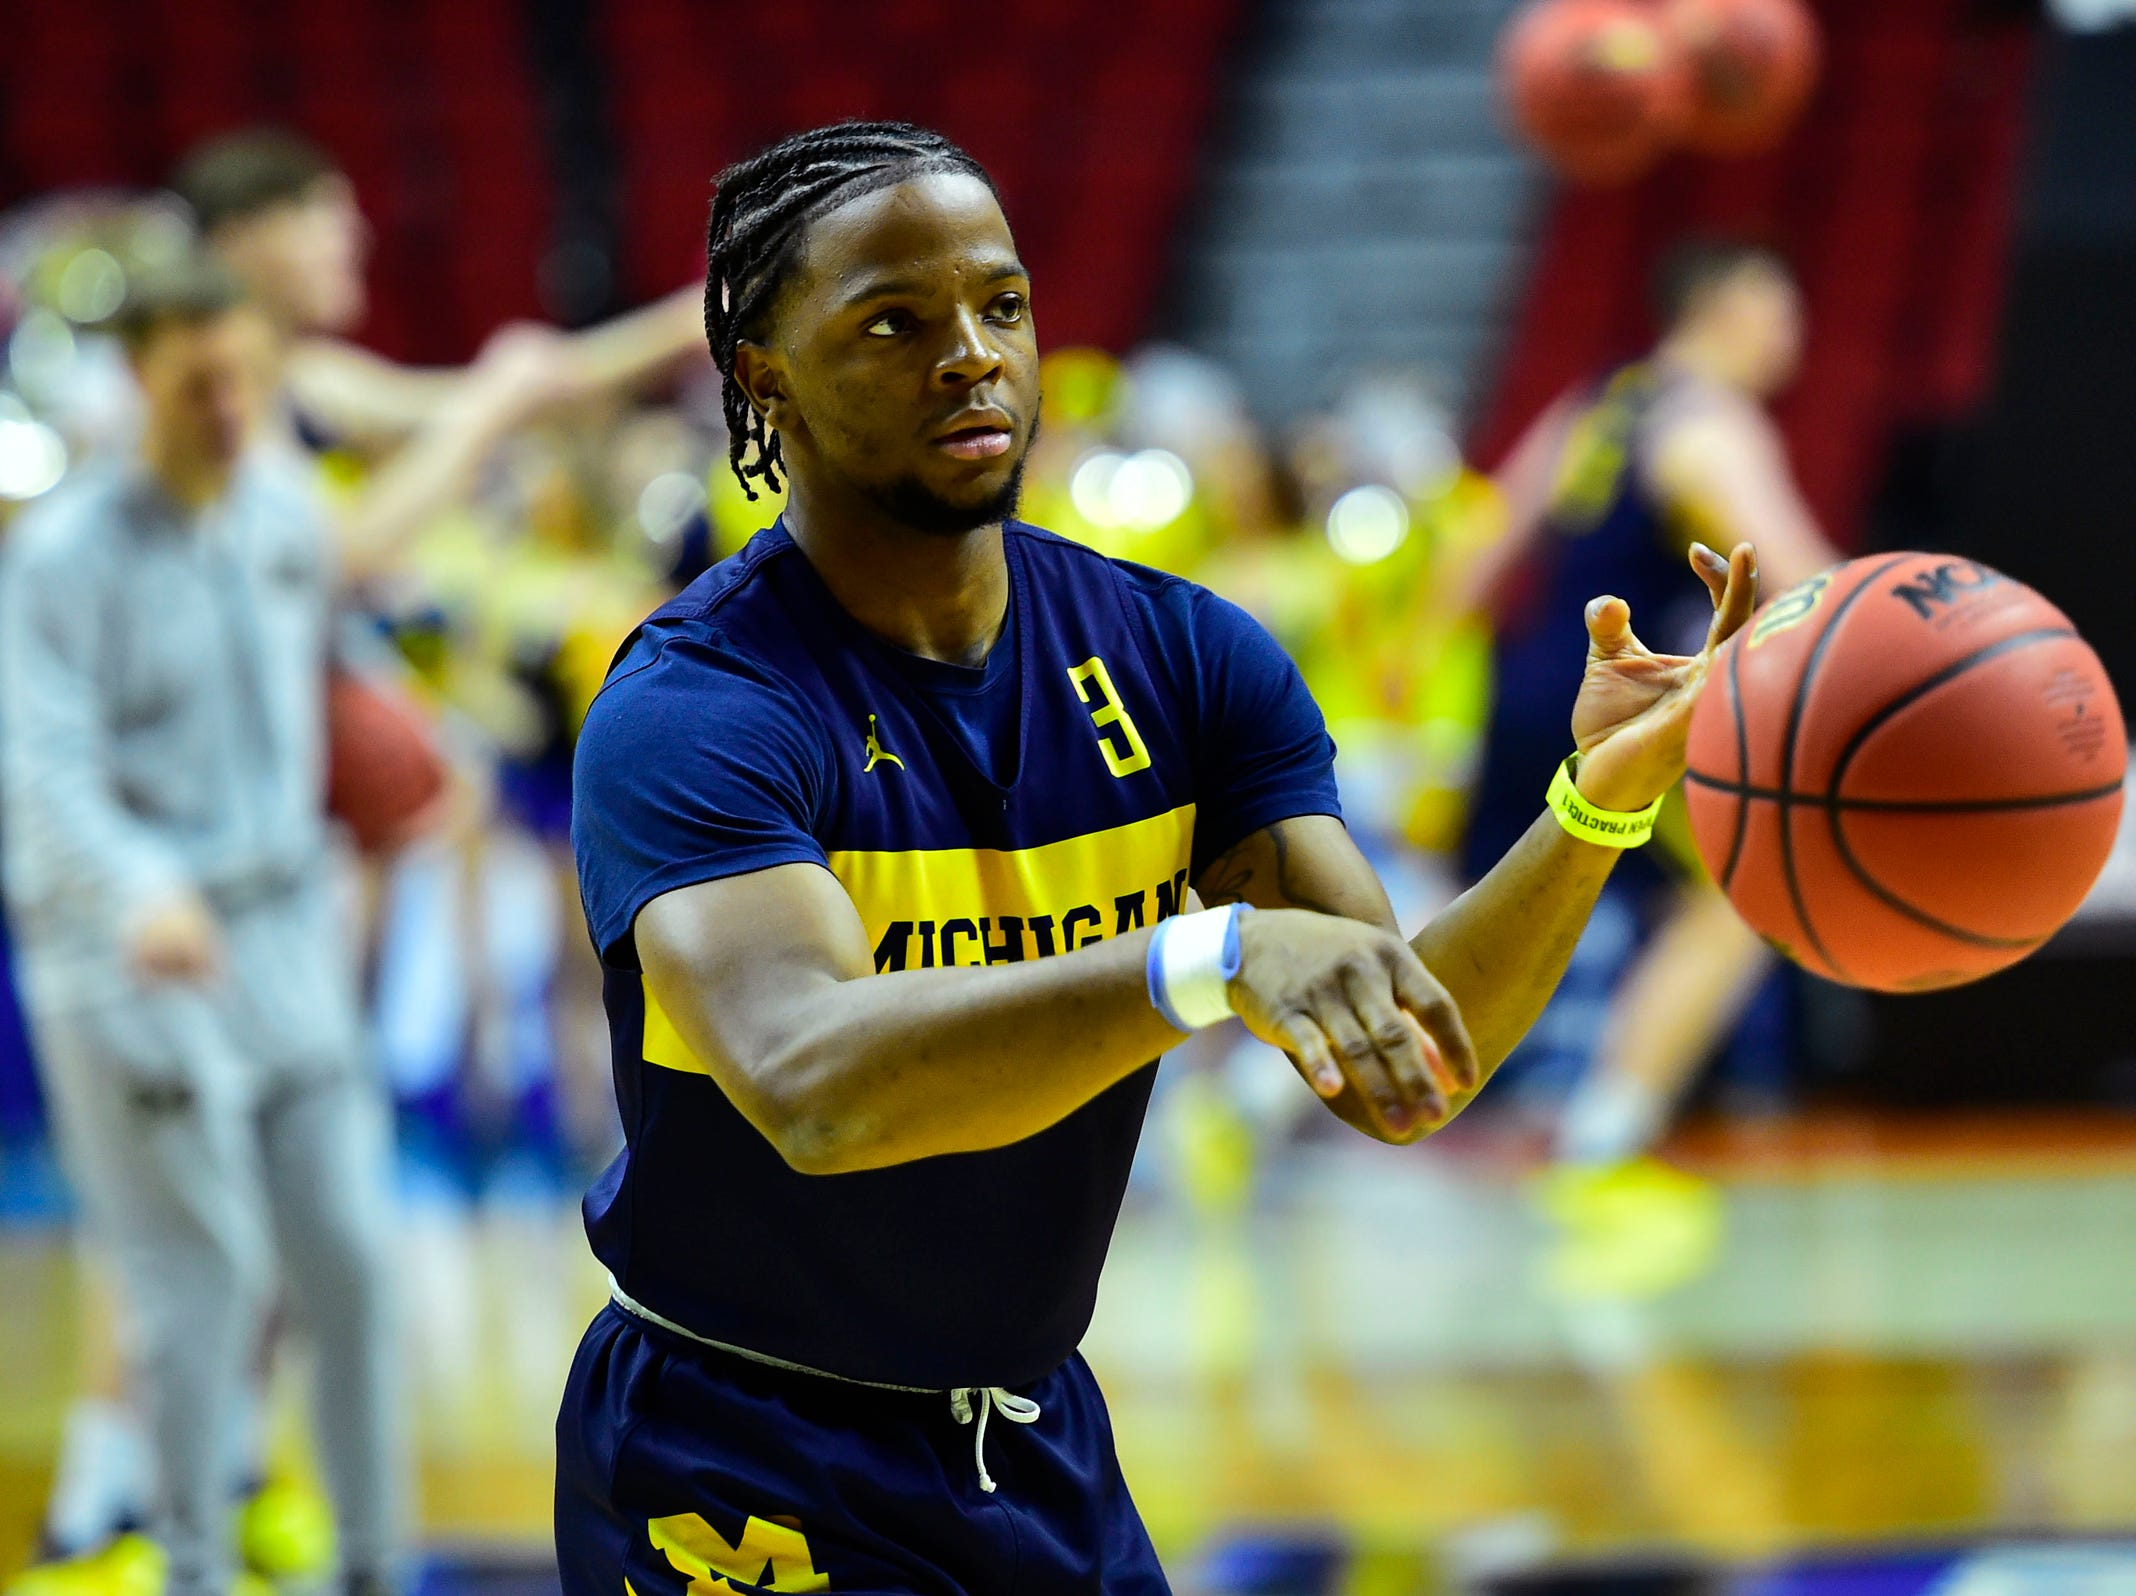 Mar 20, 2019; Des Moines, IA, USA; Michigan Wolverines guard Zavier Simpson (3) passes the ball during practice before the first round of the 2019 NCAA Tournament at Wells Fargo Arena. Mandatory Credit: Jeffrey Becker-USA TODAY Sports